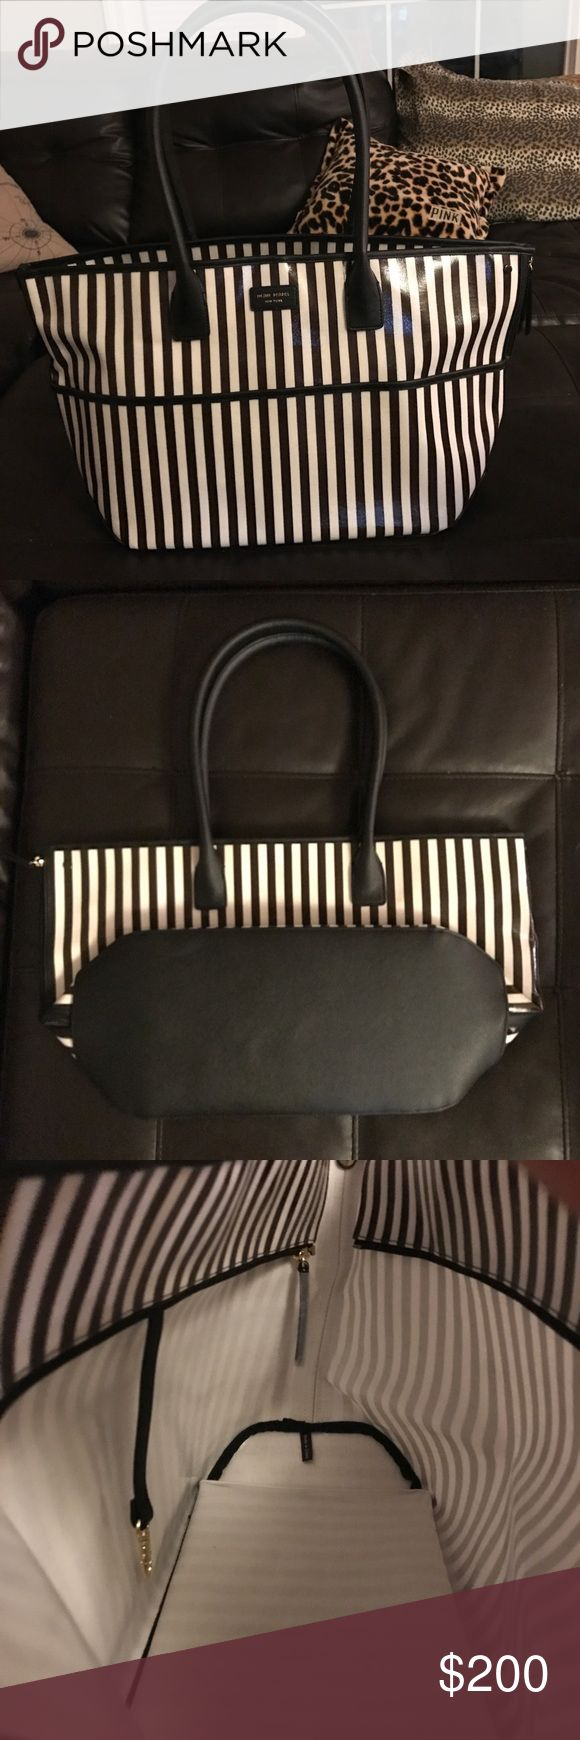 Henri Bendel Dog Carrier 🐶👜 Authentic NWT Henri Bendel dog carrier. From the current collection in stores. henri bendel Bags